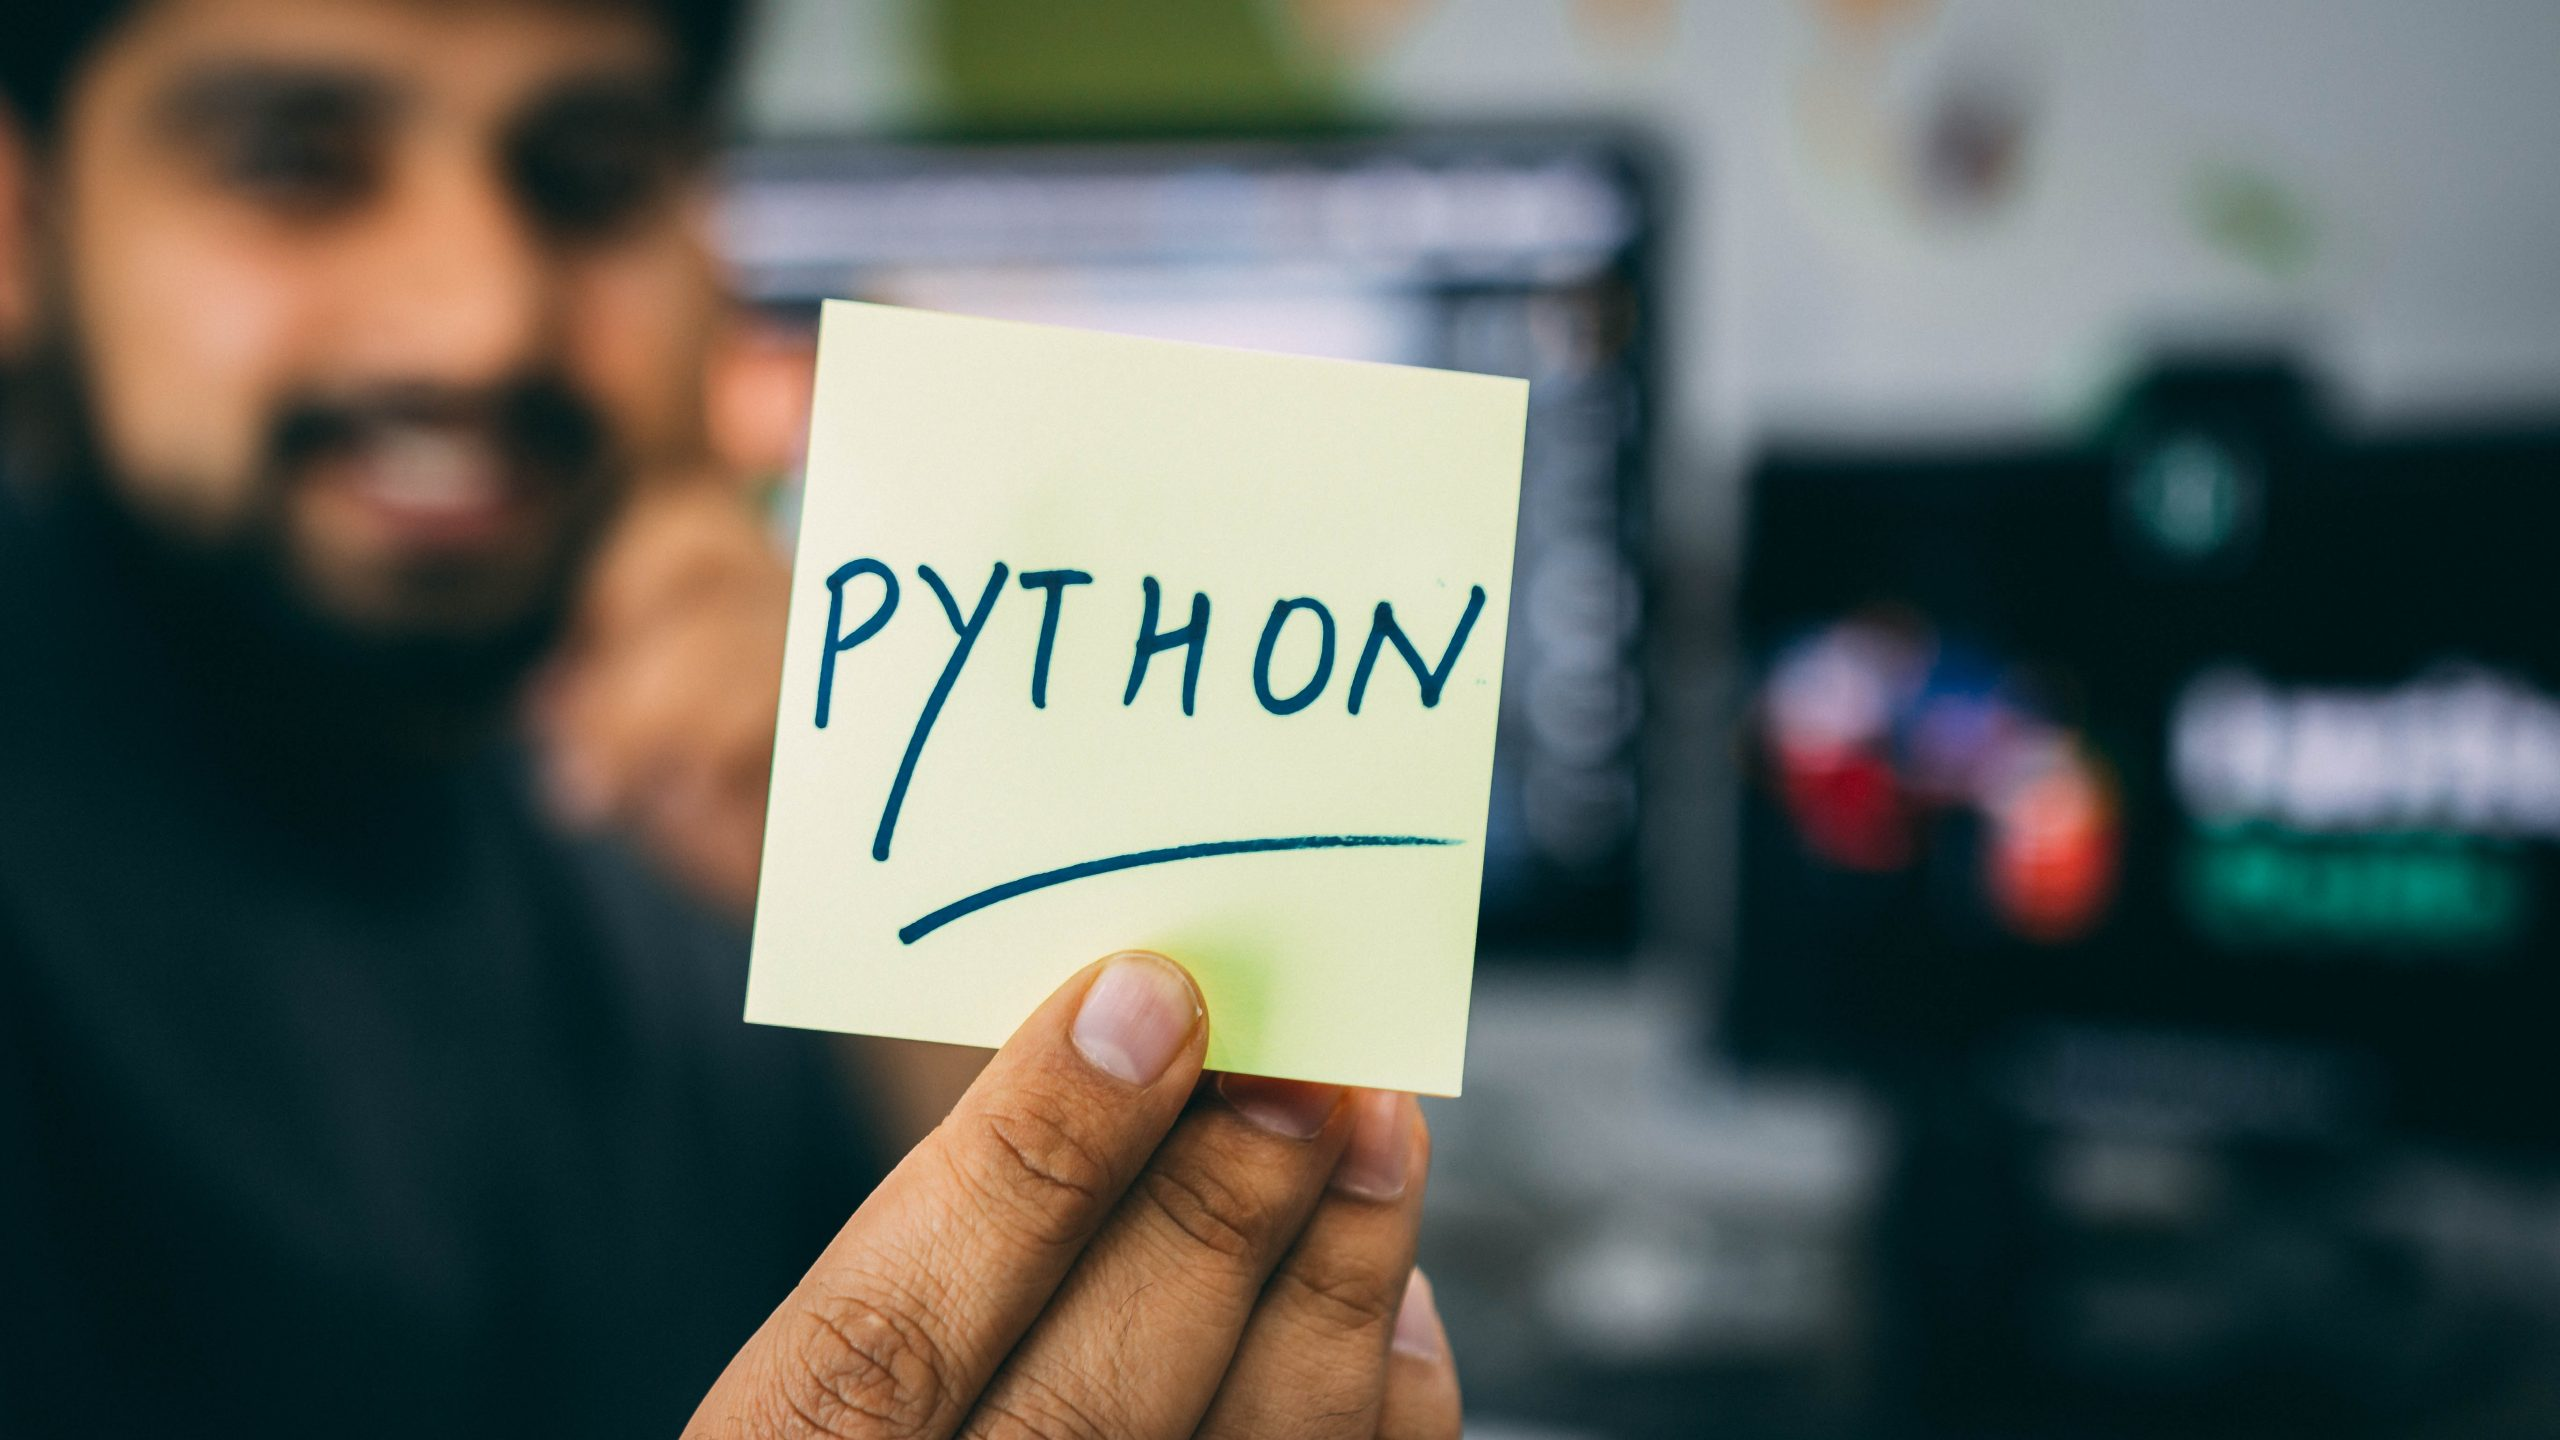 How to Convert List to String in Python